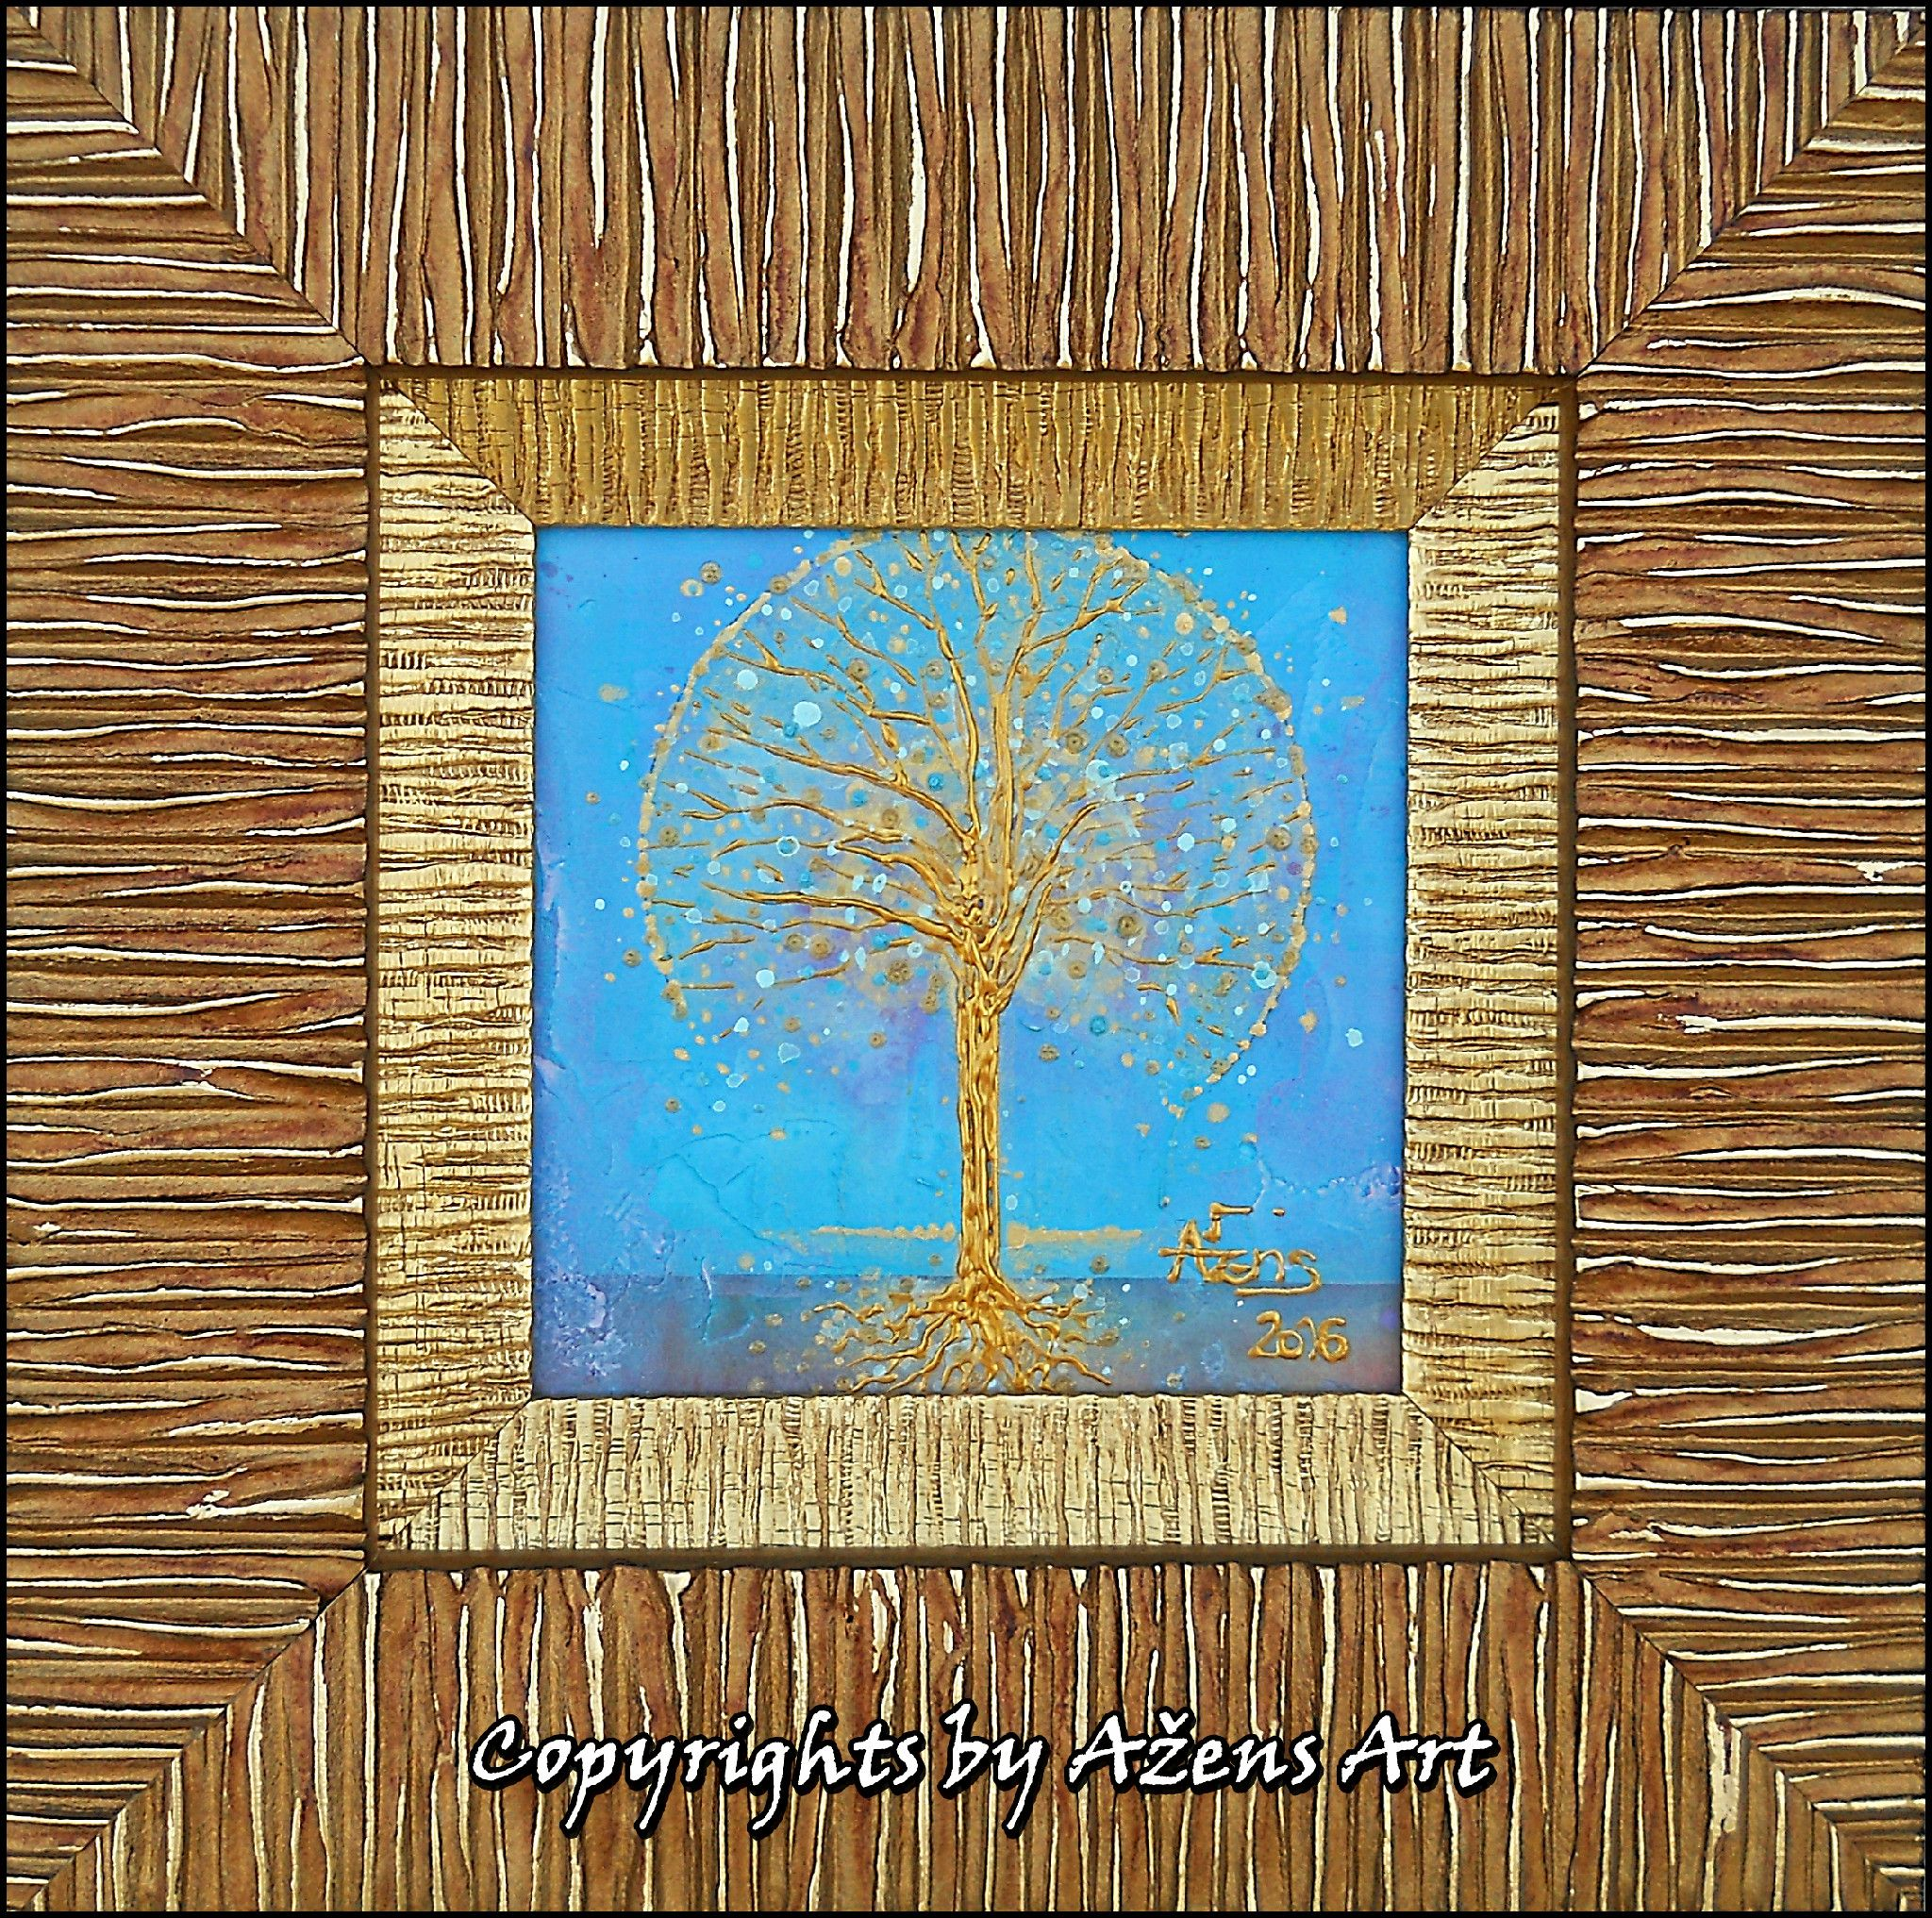 Tree Of Life 36 3d Mixed Media On Canvas 10 X 10 Cm Frame 20 X 20 Cm Mixed Media Canvas Art Painting